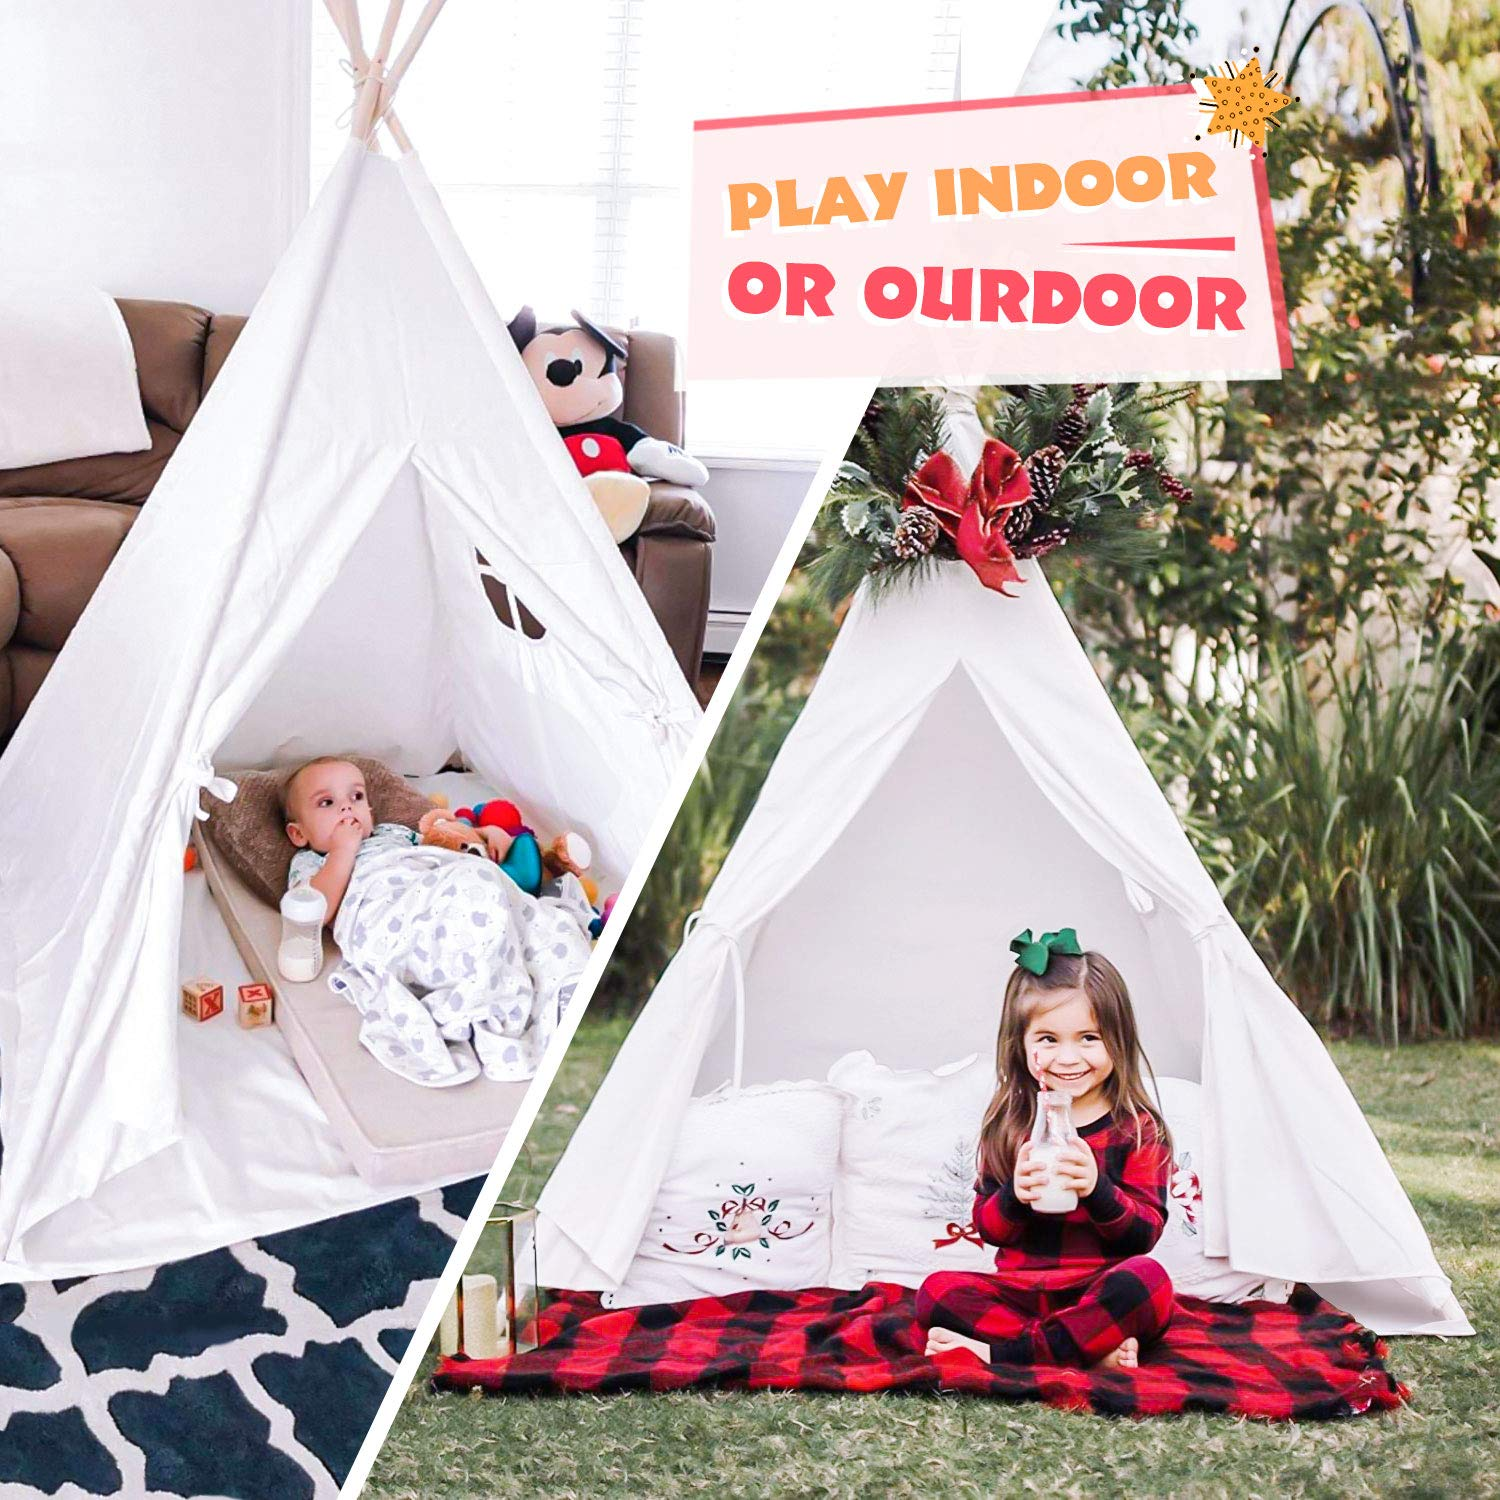 Peradix Teepee Tent for Kids, Foldable Children Indian Play Tents for Girl and Boy with Carry Bag Canvas Playhouse Toys for Girls or Child Indoor and Outdoor Camping with Cotton Cushion Flags(White)